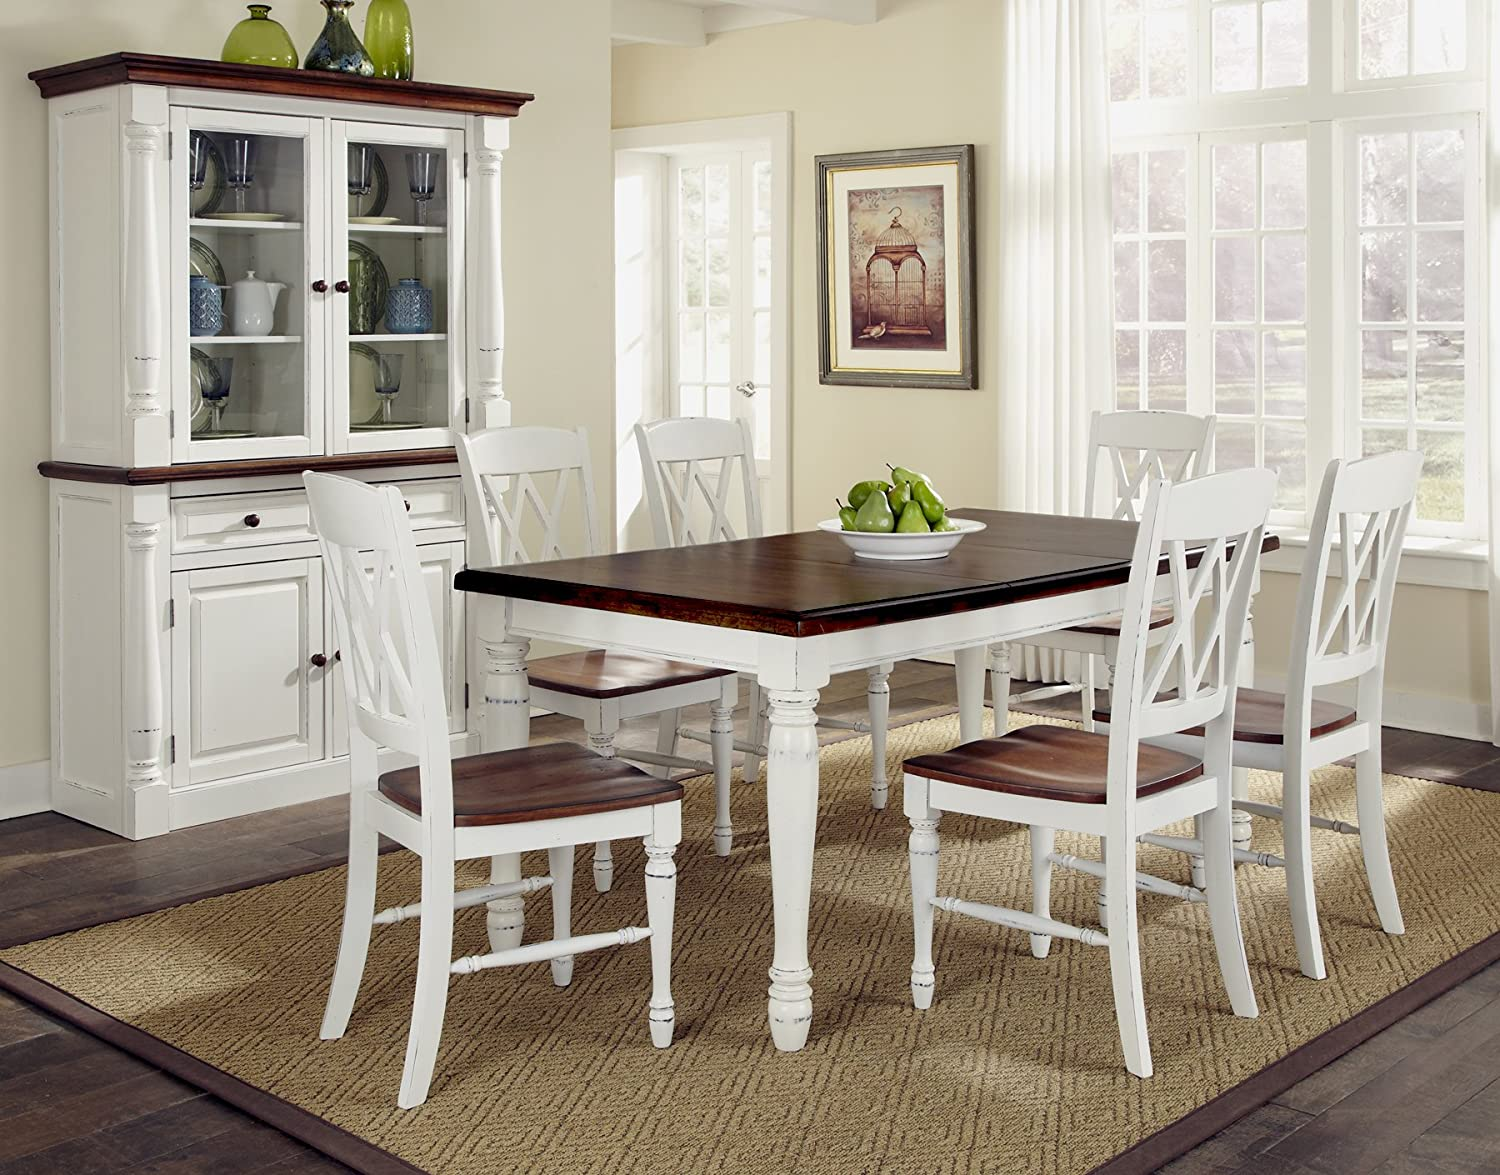 White dining room table - Amazon Com Home Styles 5020 309 Monarch Rectangular Dining Table And Six Double X Back Chair Tables